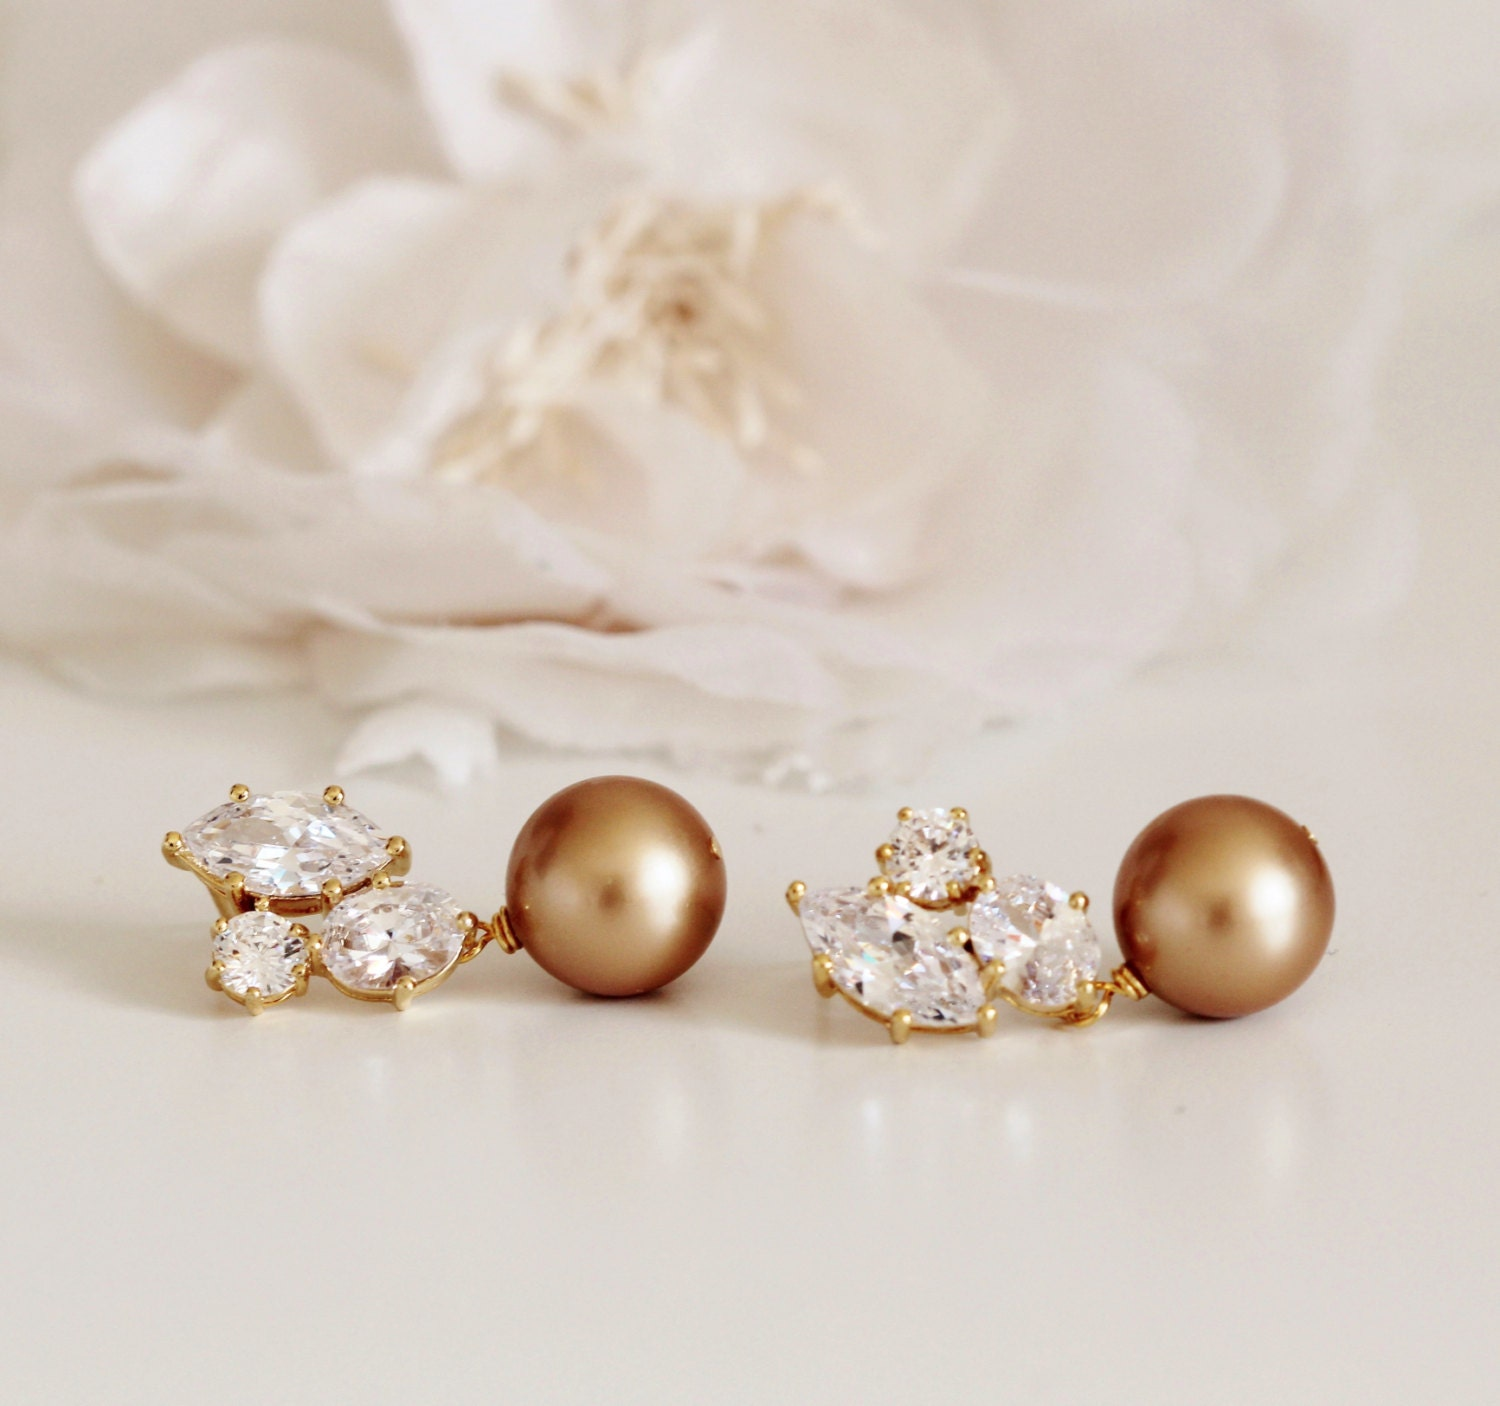 Pearl Wedding Jewelry Mother Of The Bride Gift Gold Bridal Earrings Vintage Groom